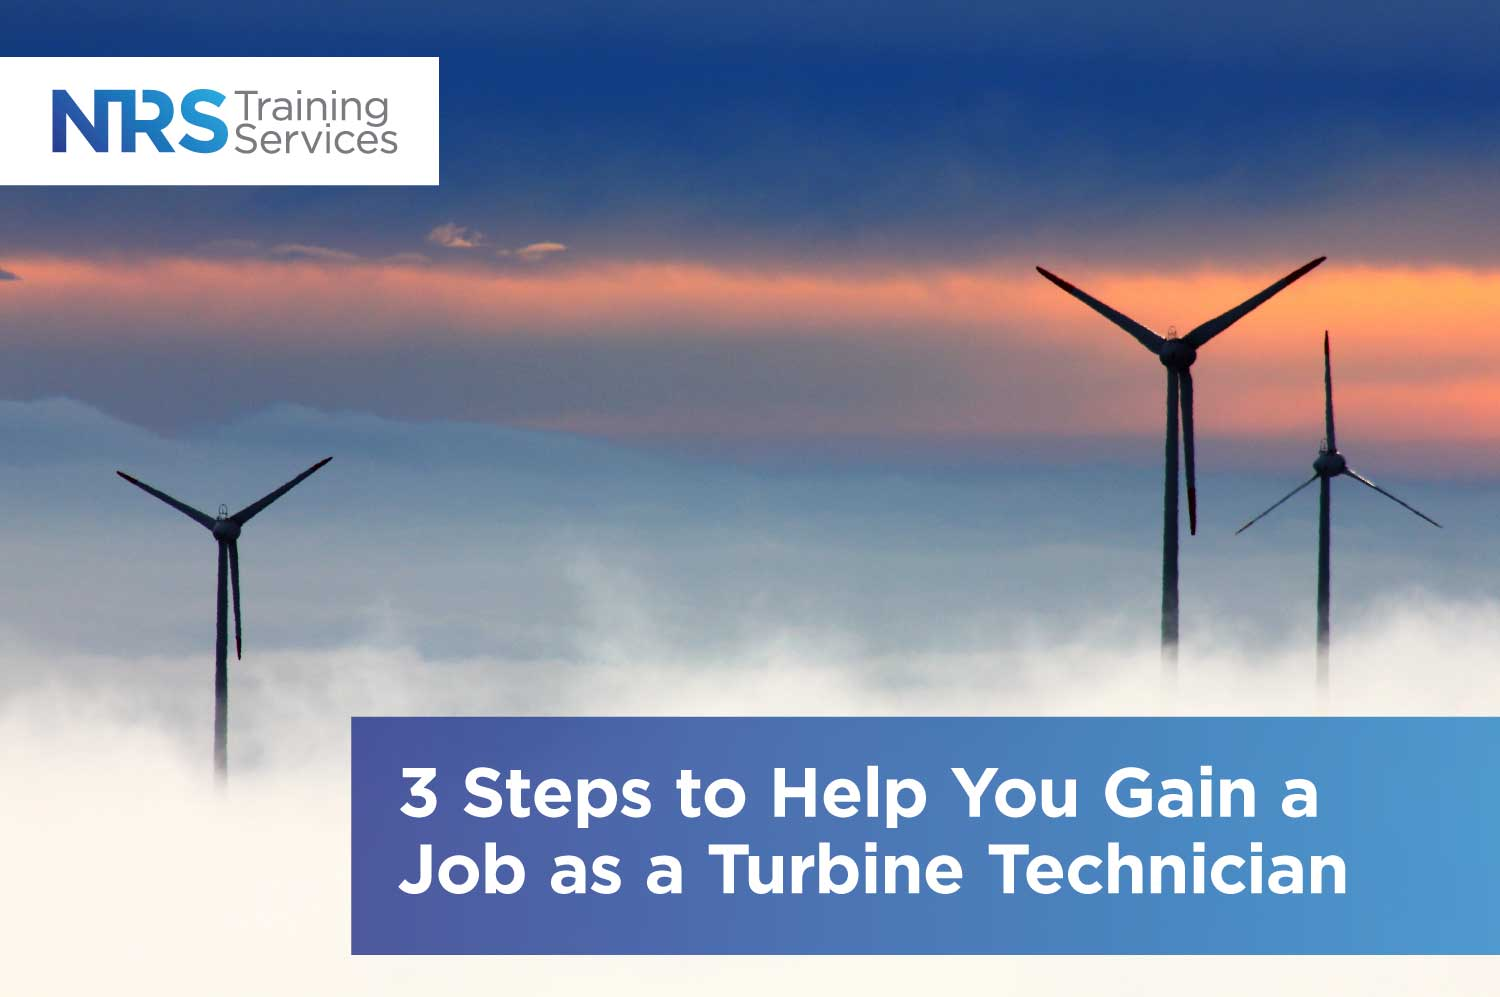 3 Steps to Help You Gain a Job as a Turbine Technician